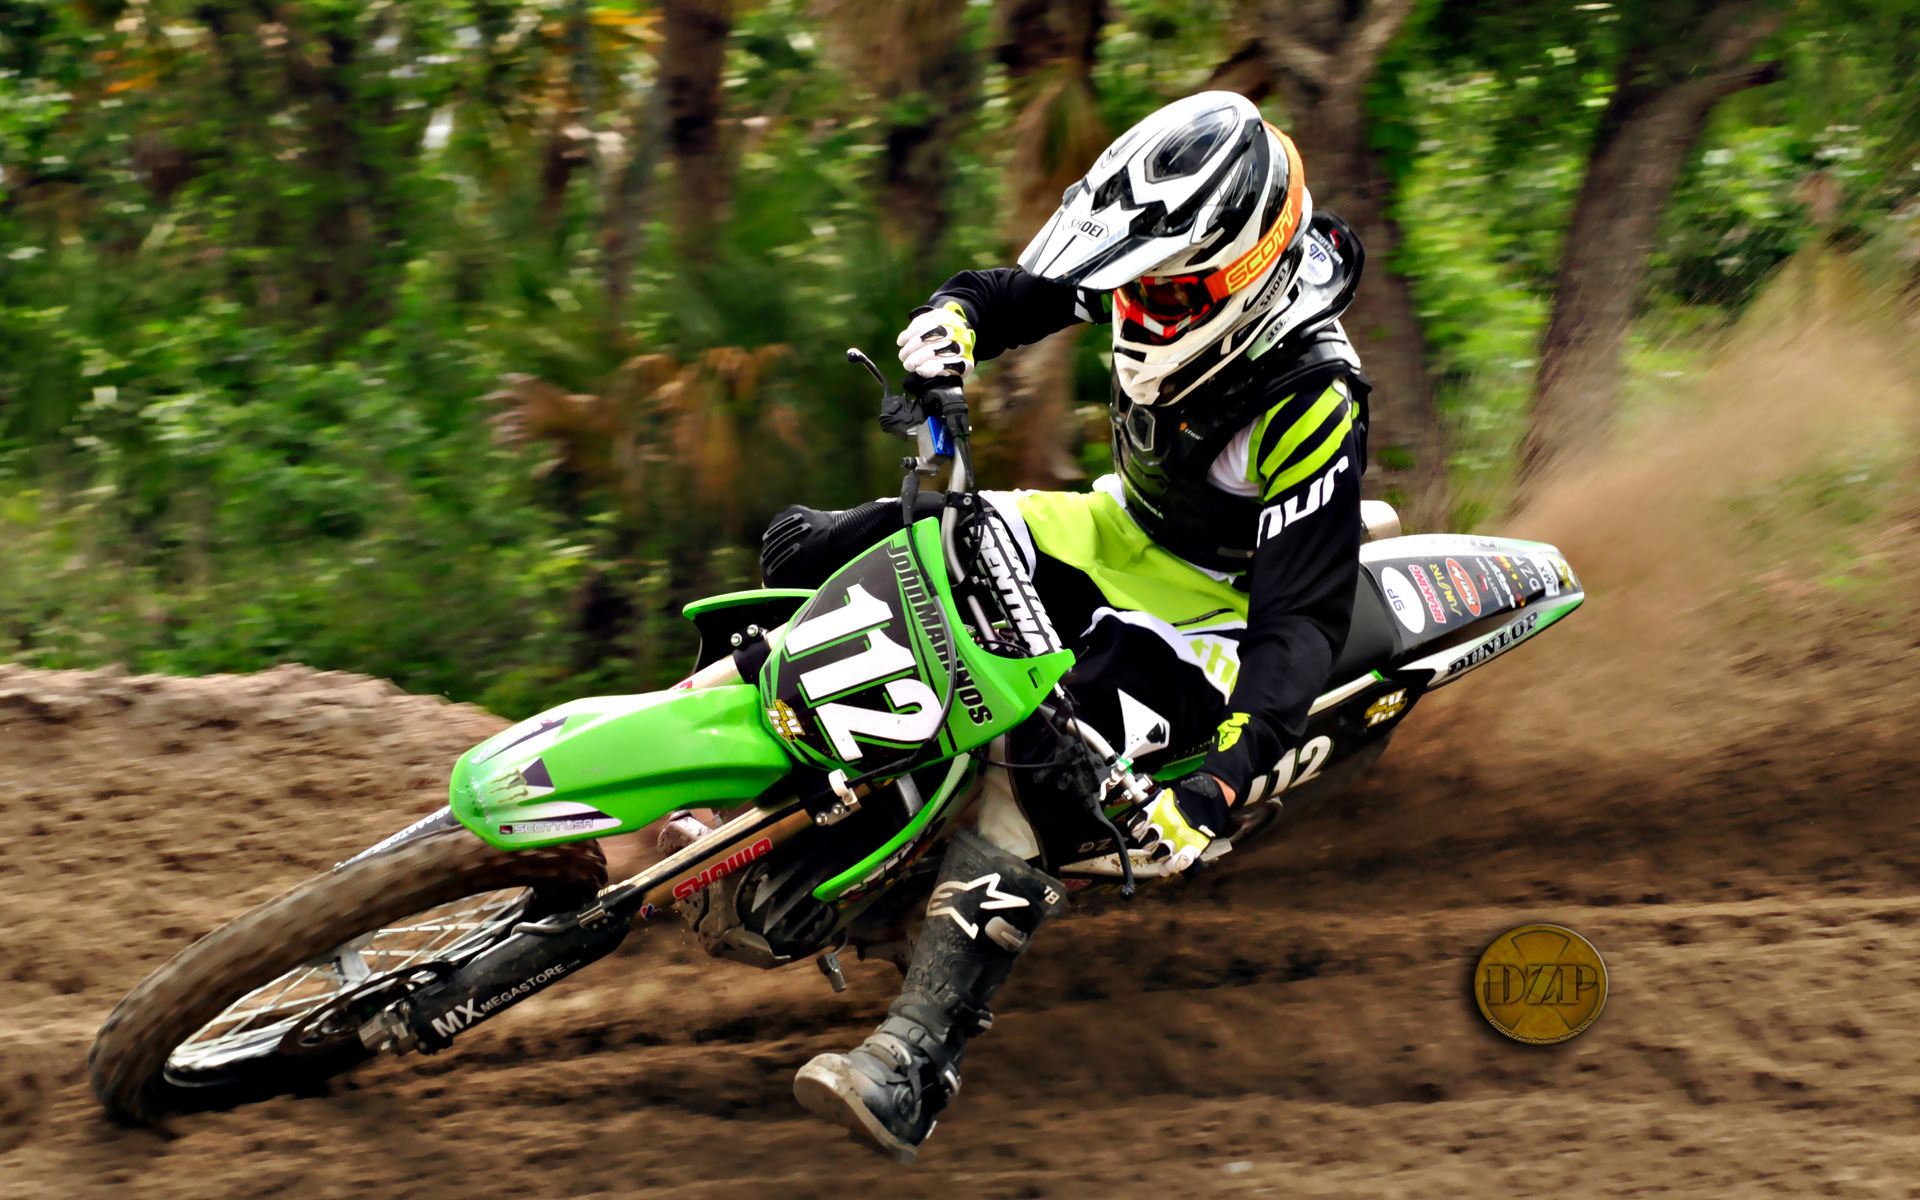 Motor Motocross Wallpapers High Quality Resolution Mini  1920x1200